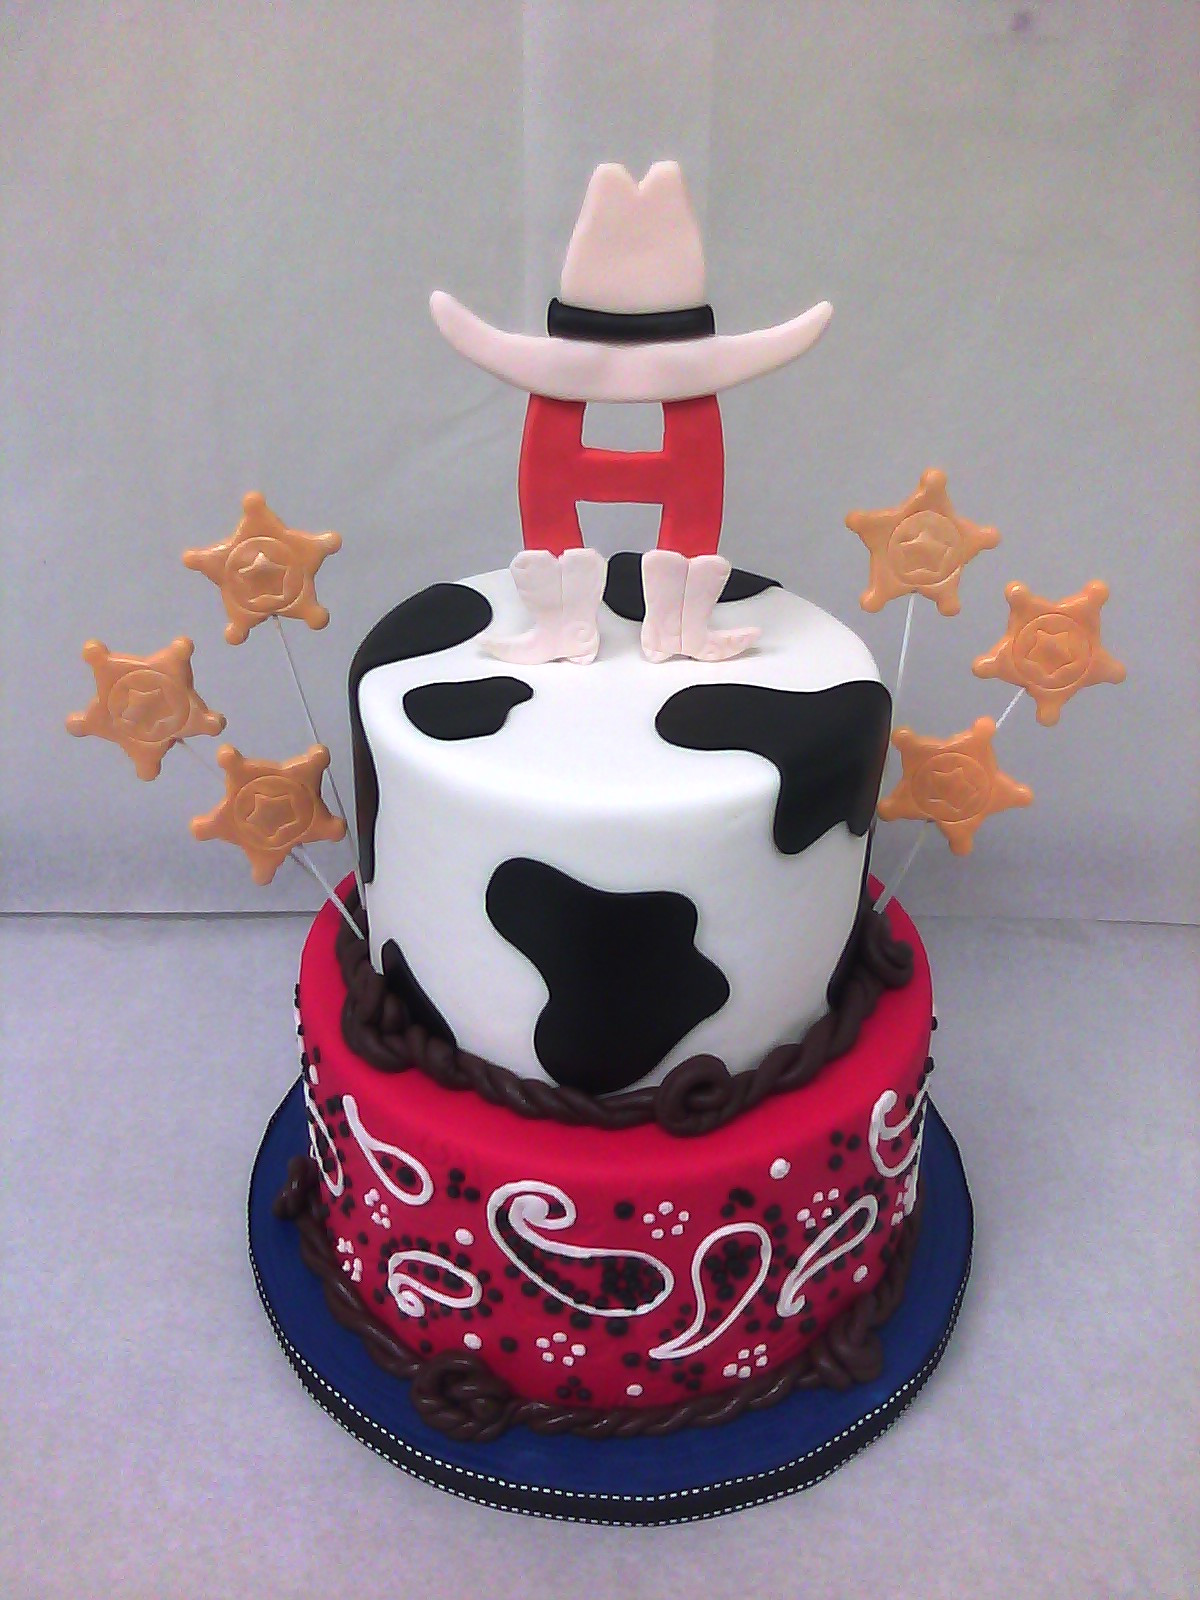 Best ideas about Western Birthday Cake . Save or Pin Houston Rodeo Cake Now.